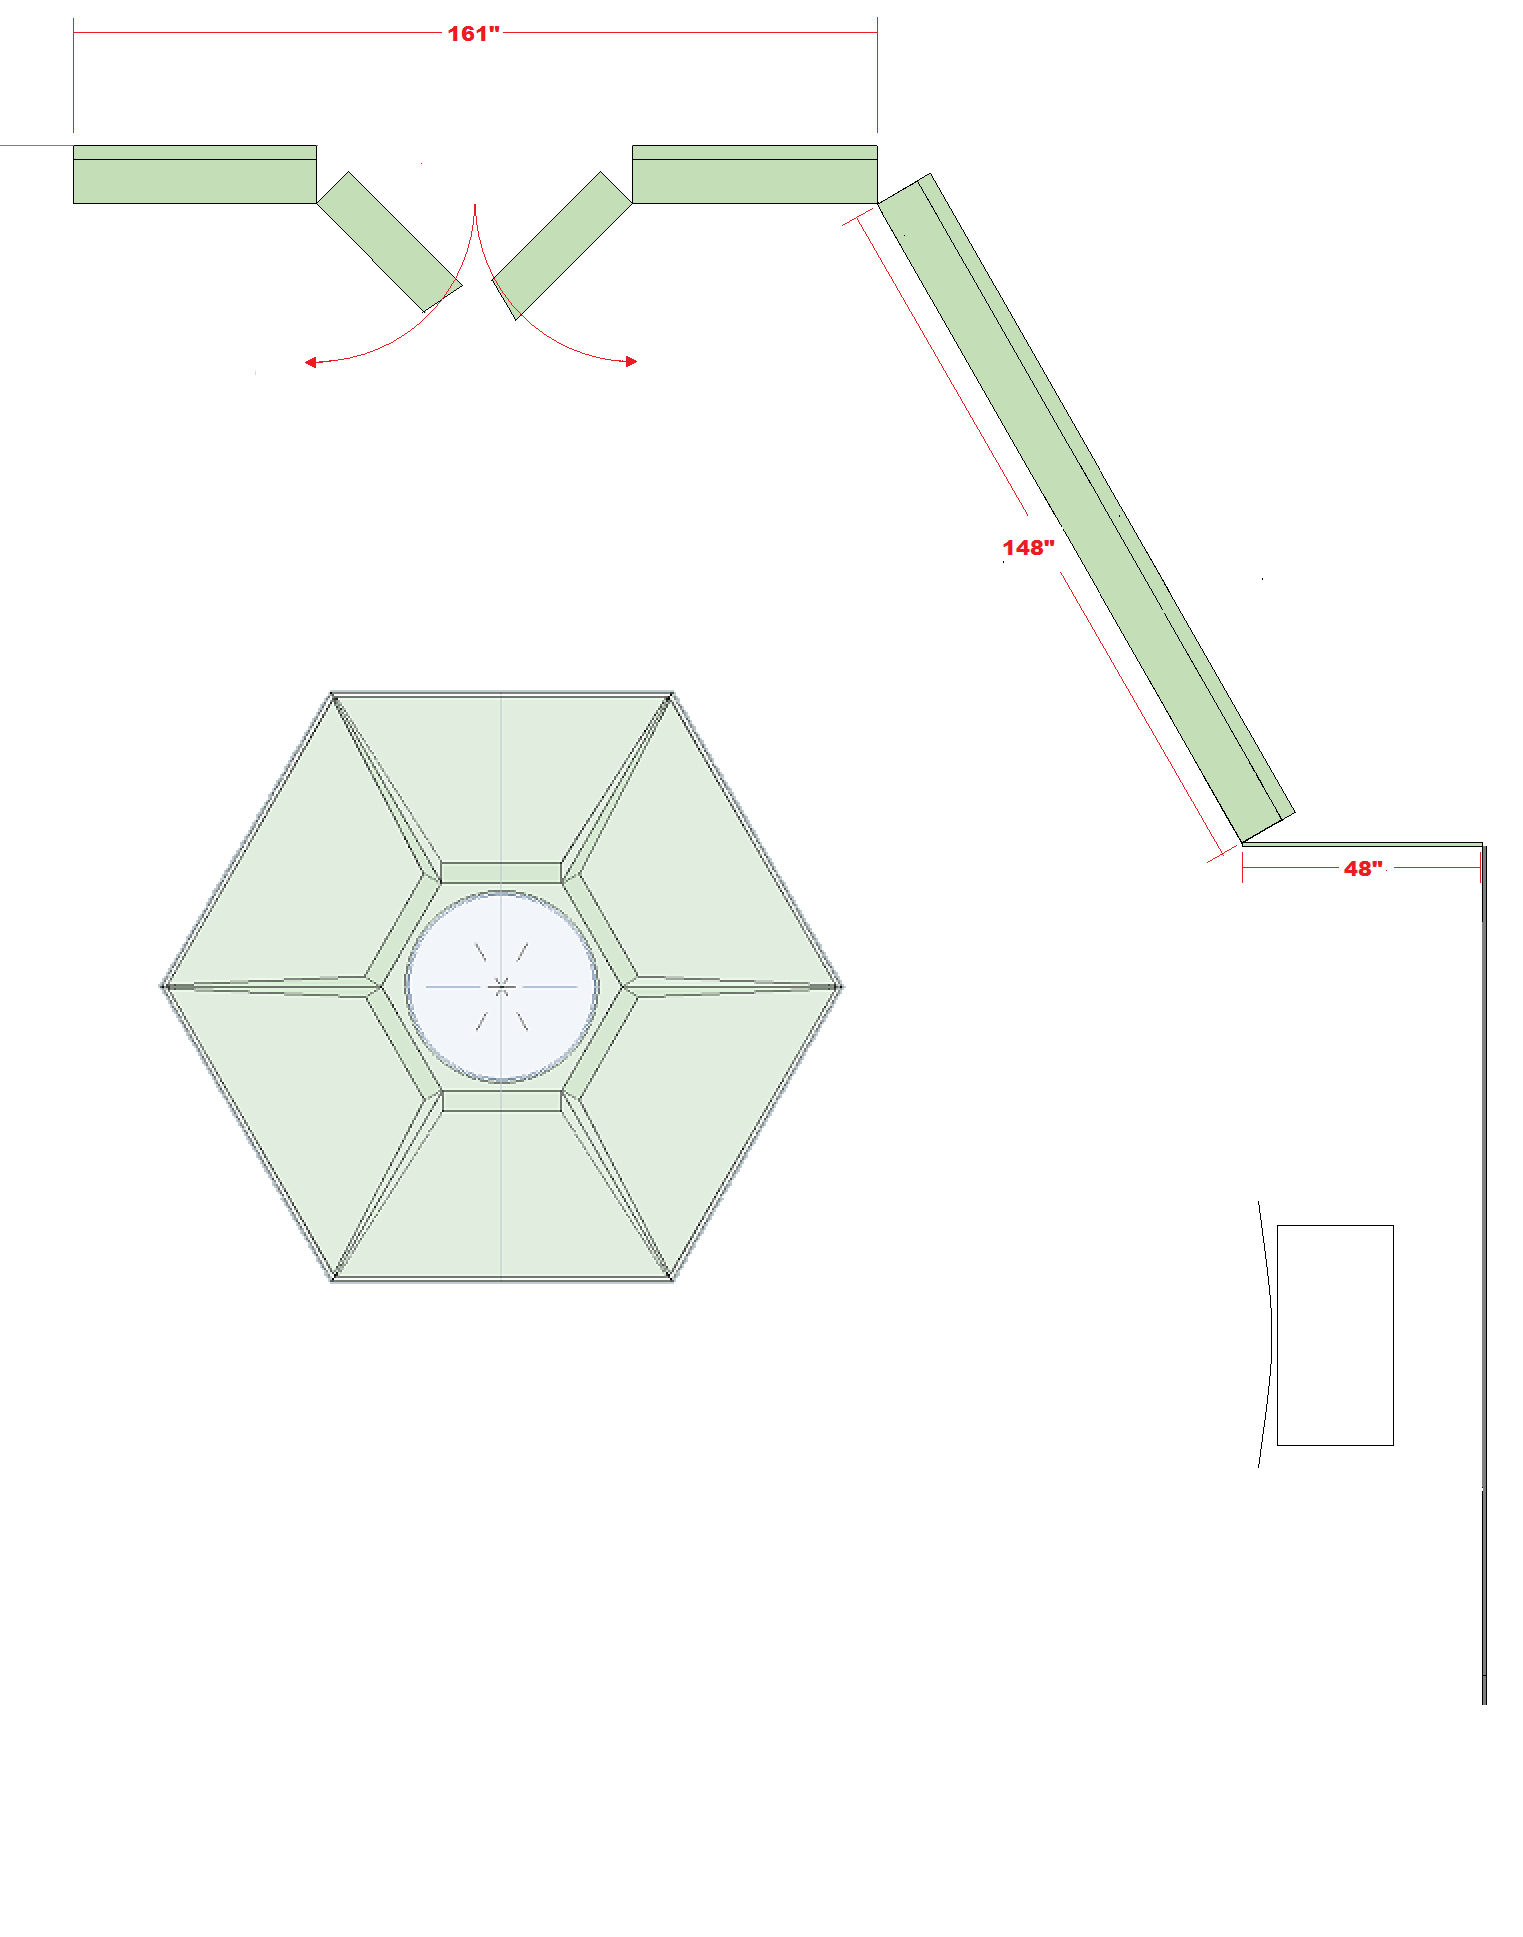 floorplate layout.png